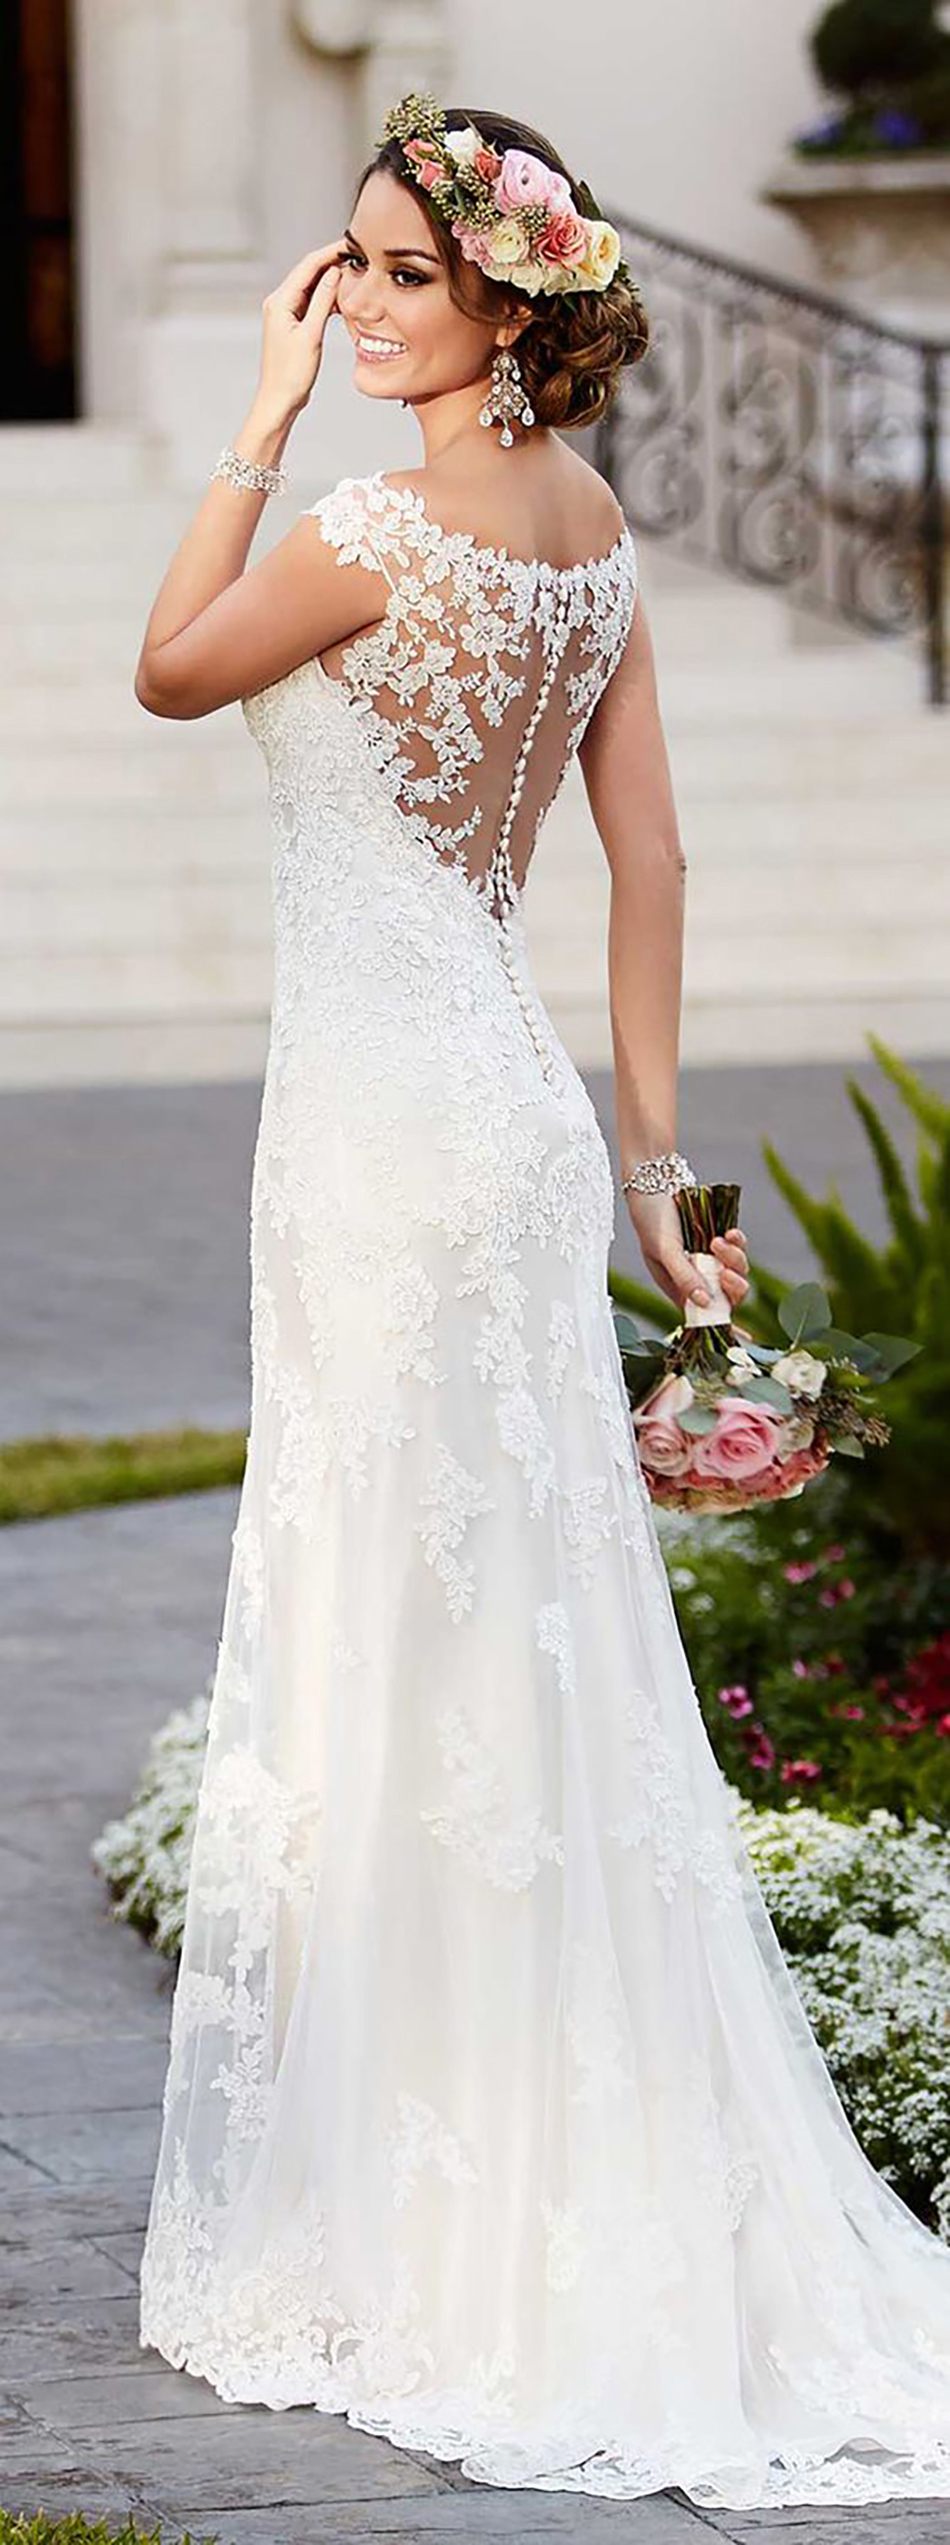 Wedding Couture gowns pinterest pictures recommendations dress in winter in 2019